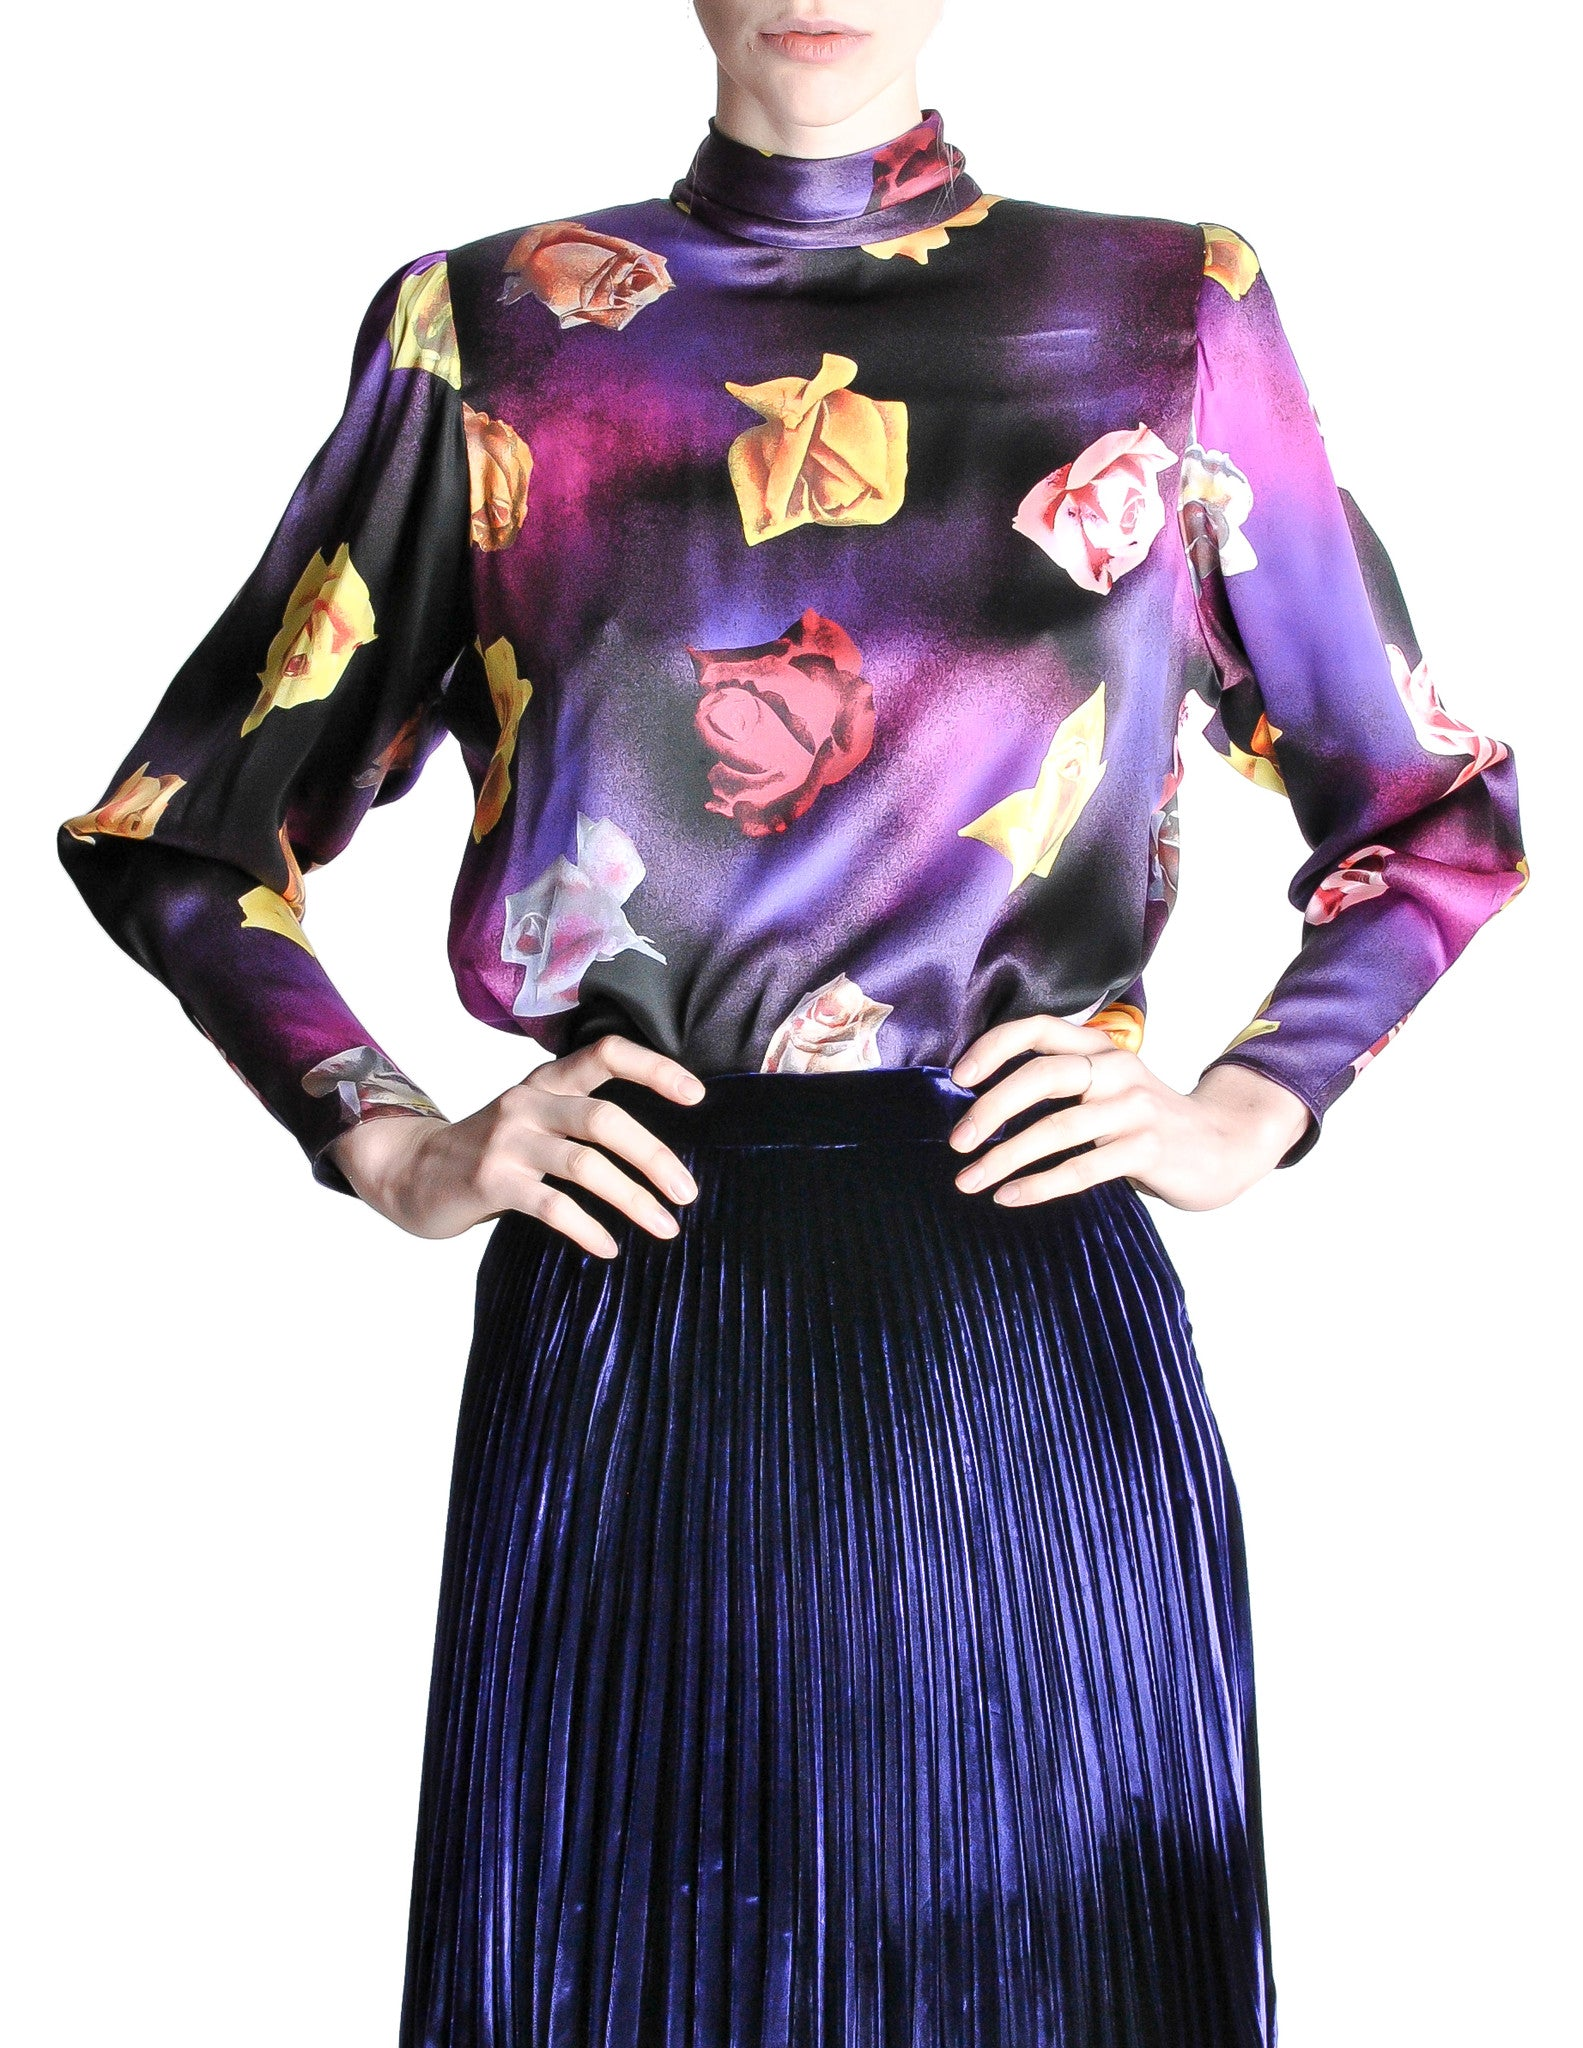 Ungaro Vintage Art Rose Print Top - Amarcord Vintage Fashion  - 1